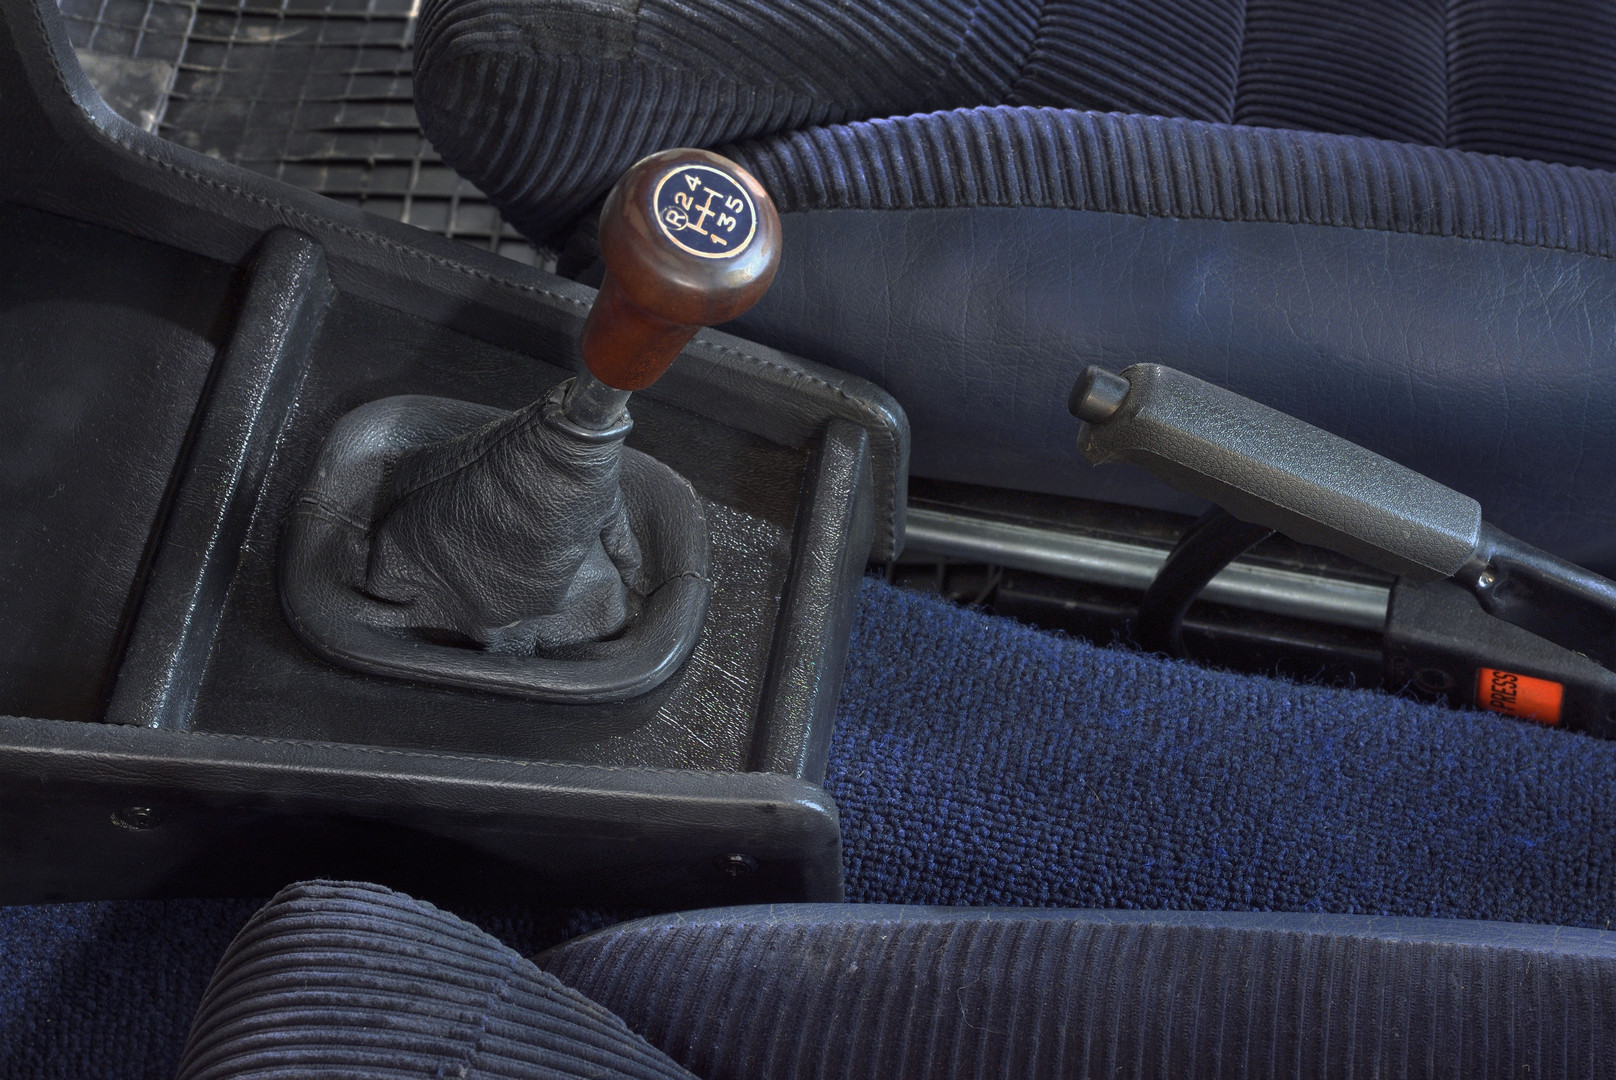 BMW 530 MLE Gear Shift